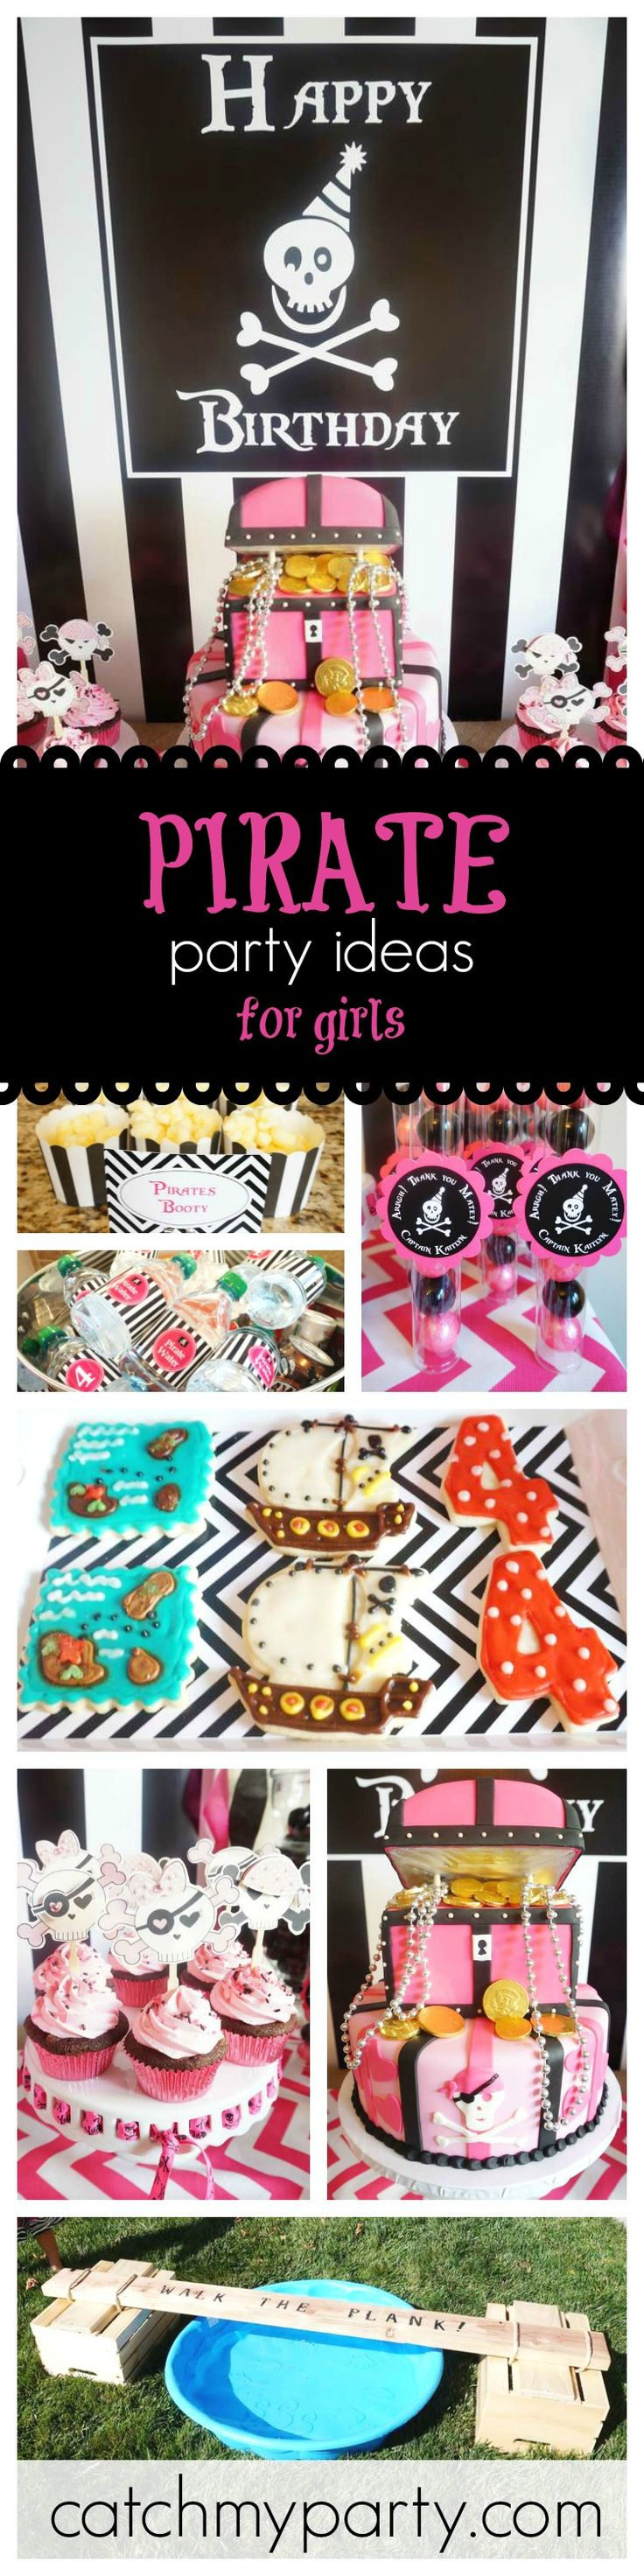 Arrgh! Girls are going to love this pink pirate birthday party. You won't want to miss it for party ideas. The pink treasure chest cake is so cool!! See more party ideas at CatchMyParty.com